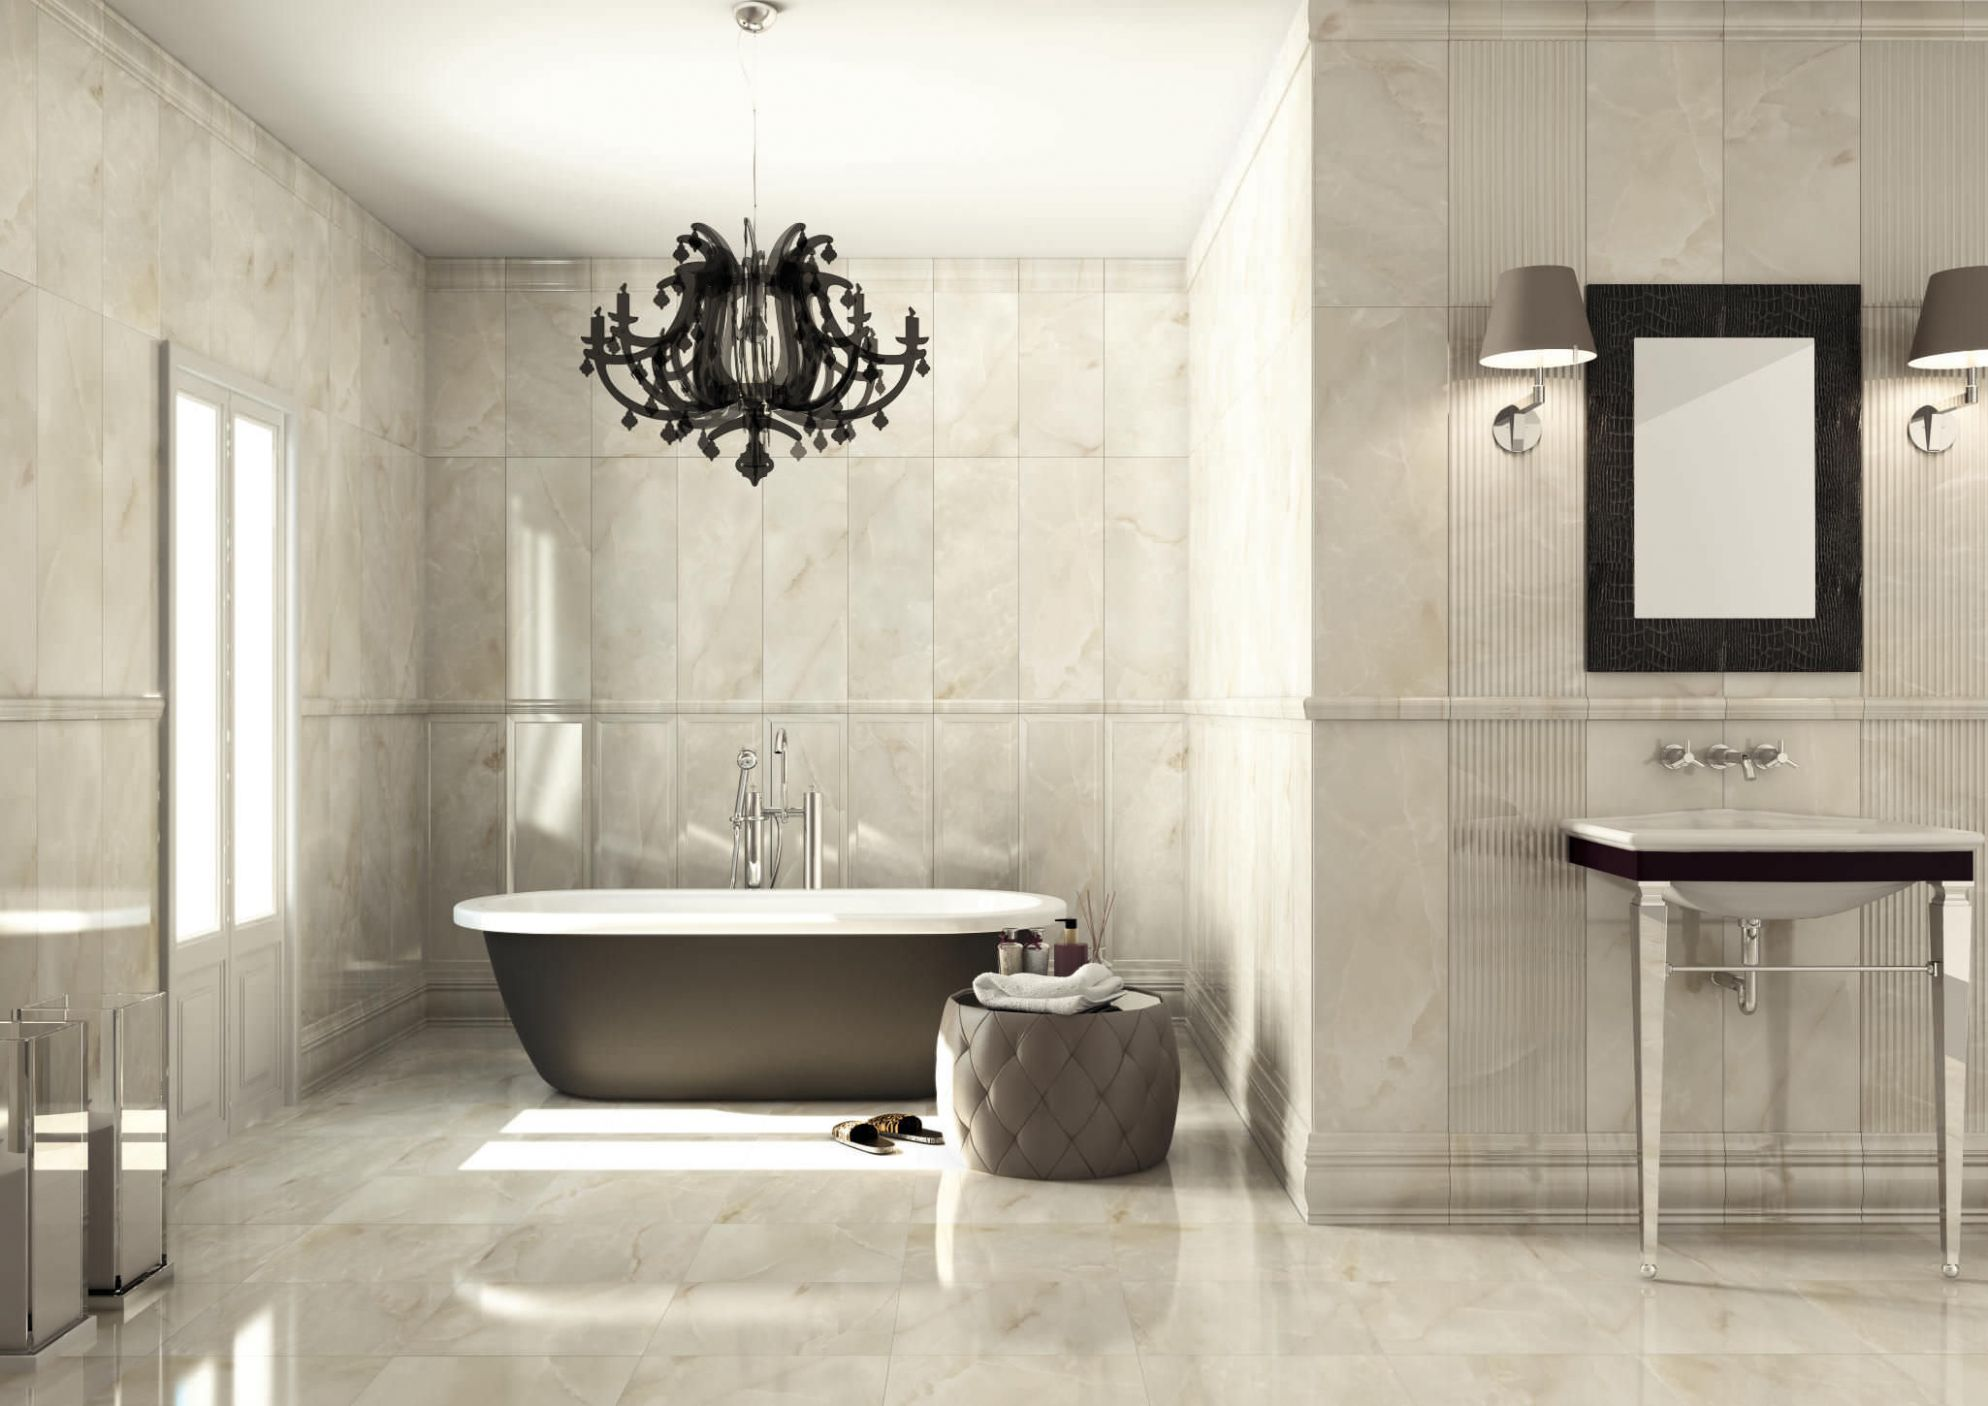 10 Fascinating Marble Bathroom Ideas That Everyone Will Like - bathroom ideas adelaide